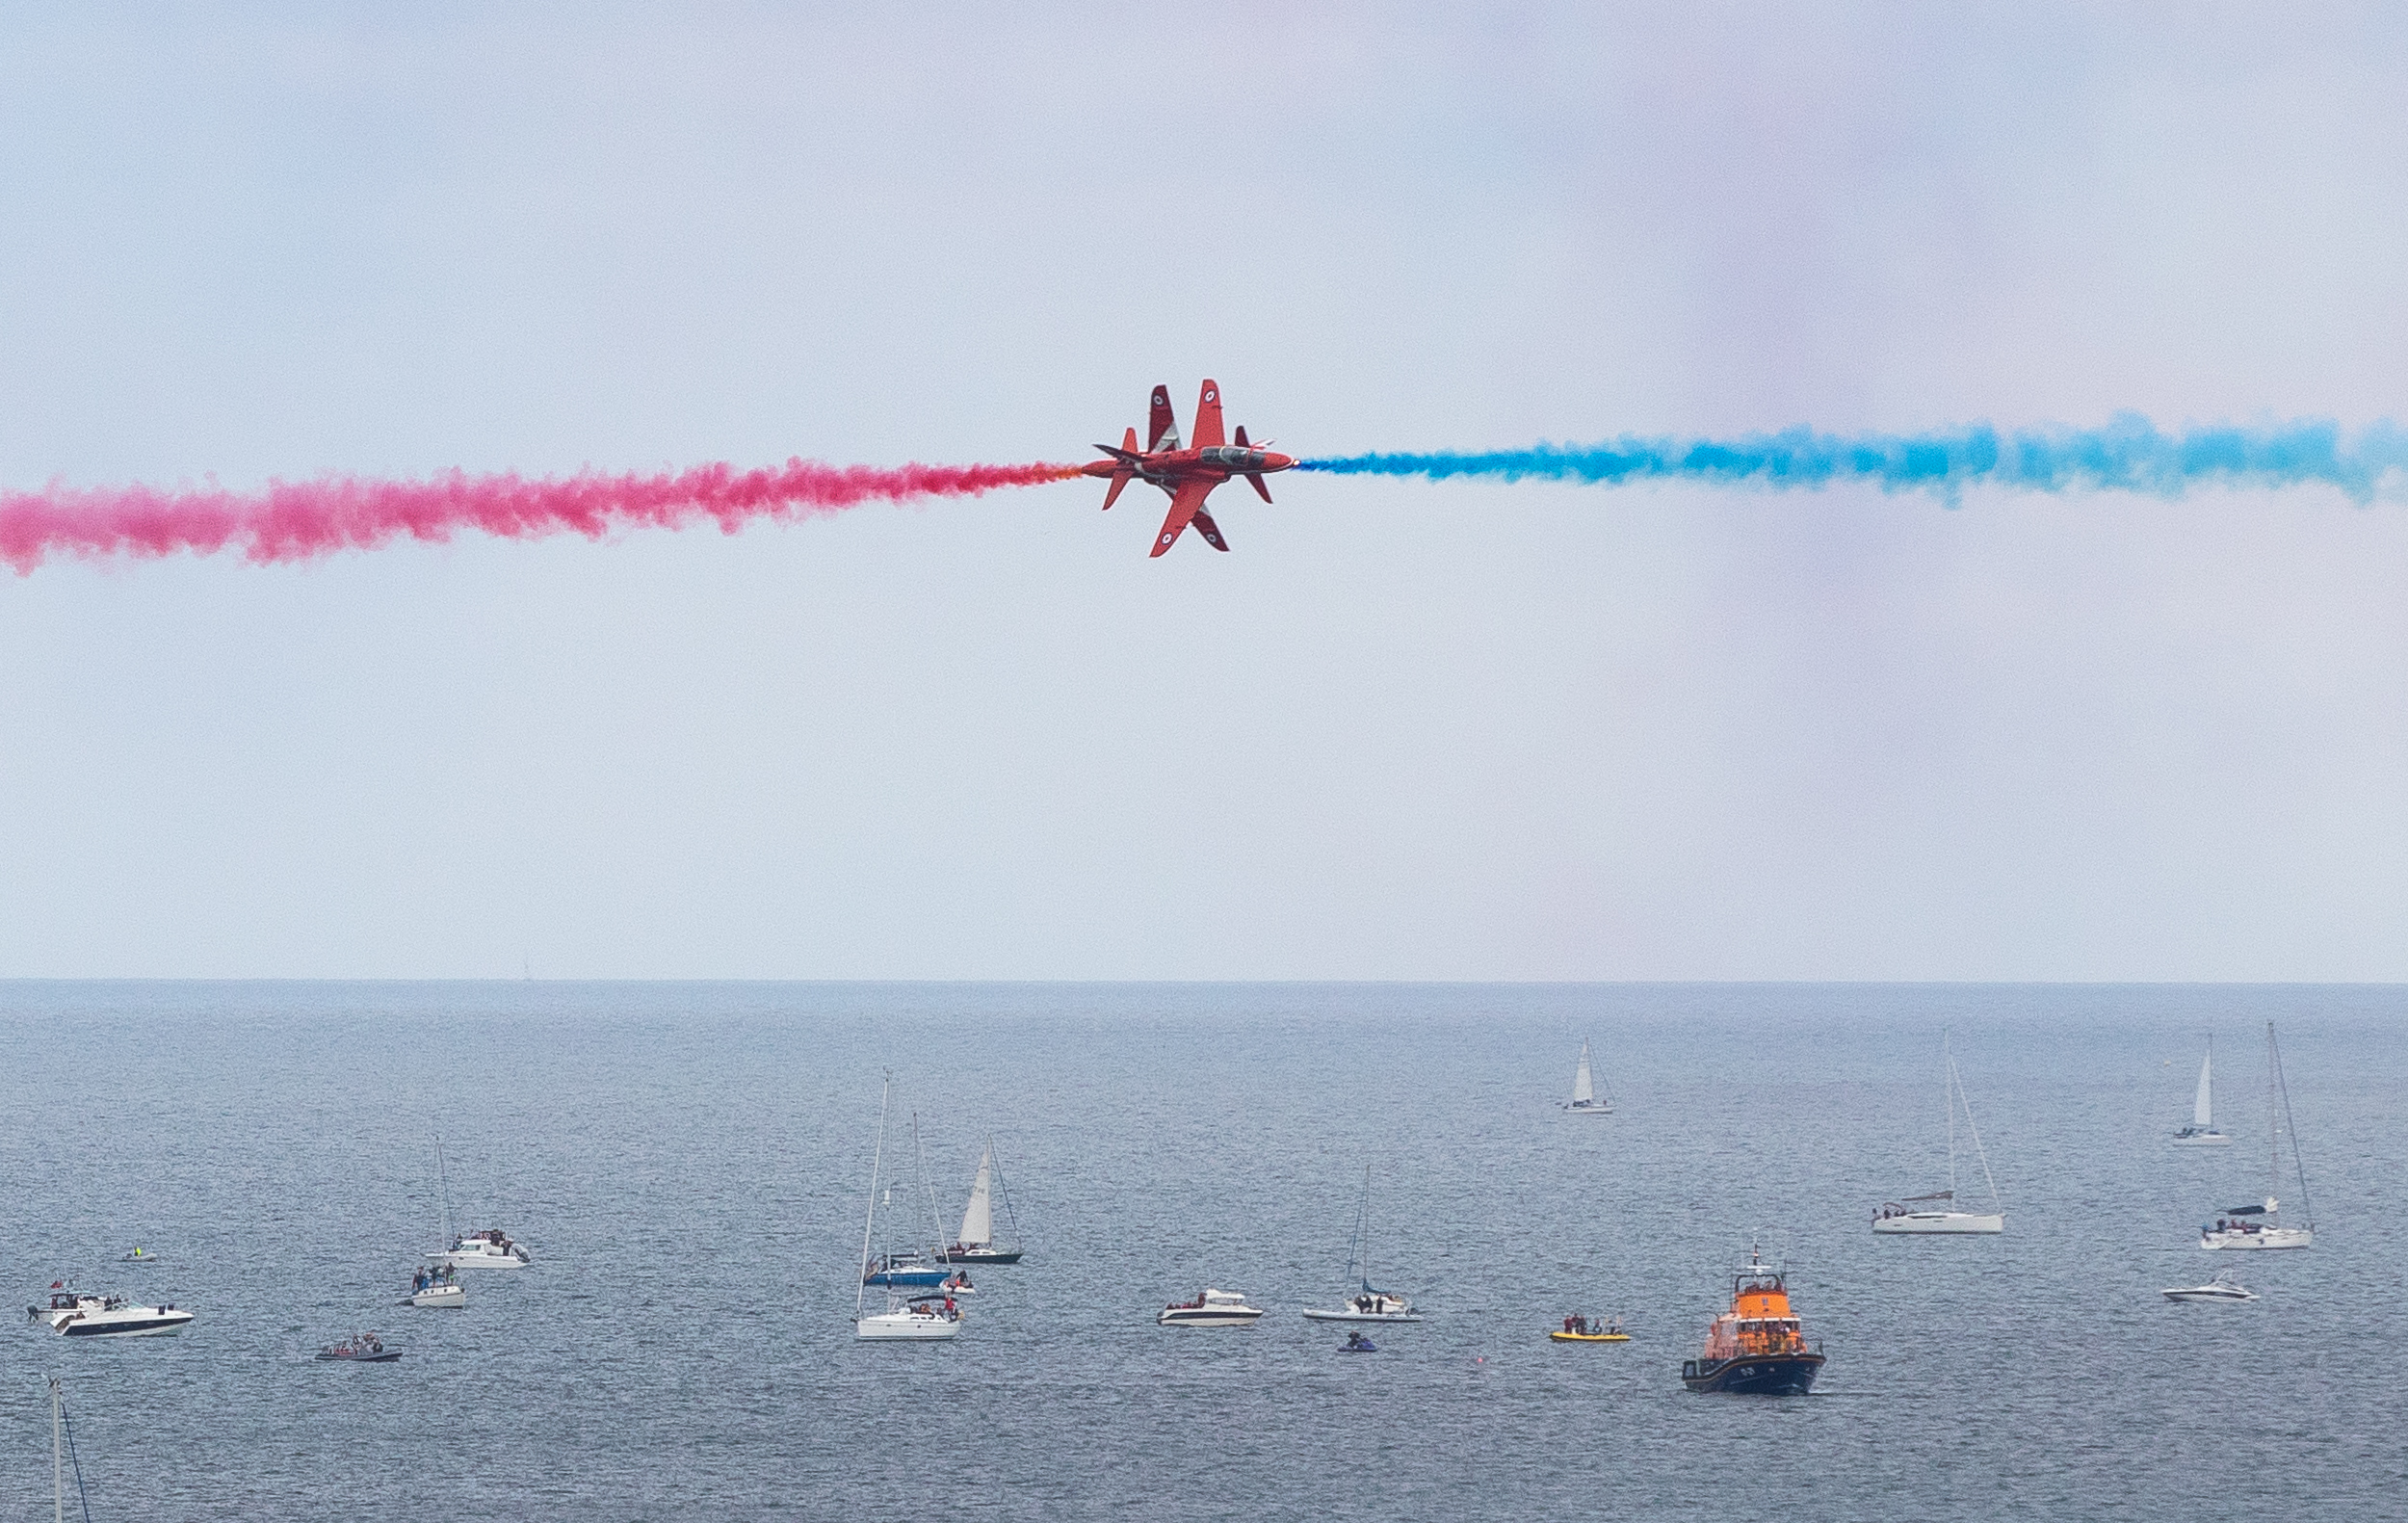 The Red Arrows perform a display as part of Falmouth Week in Cornwall. Large crowds are expected, as 45,000 people watched last year. August 2018, Falmouth, UK.